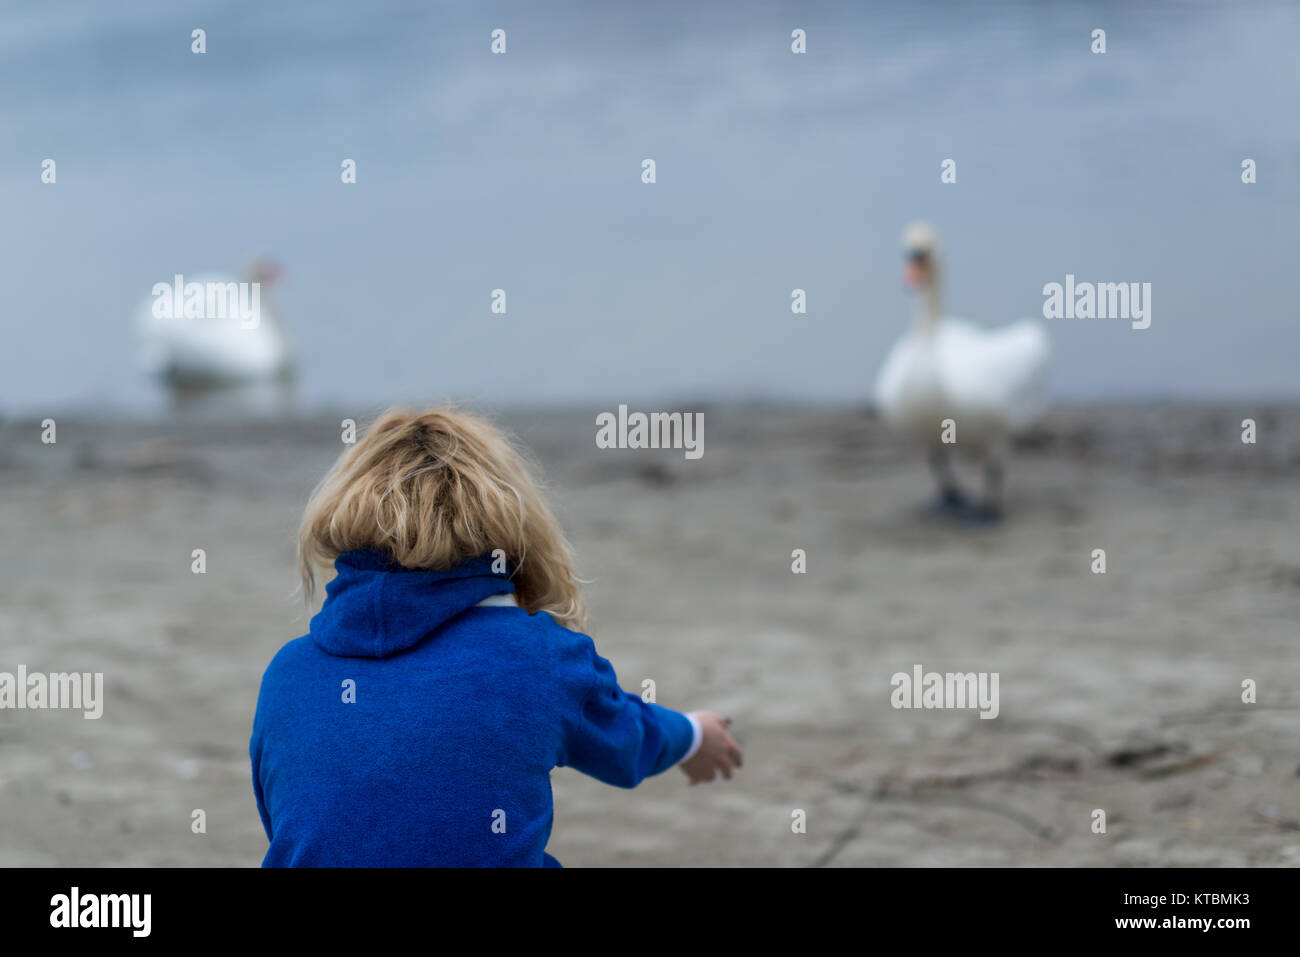 A girl is talking to swans - Stock Image